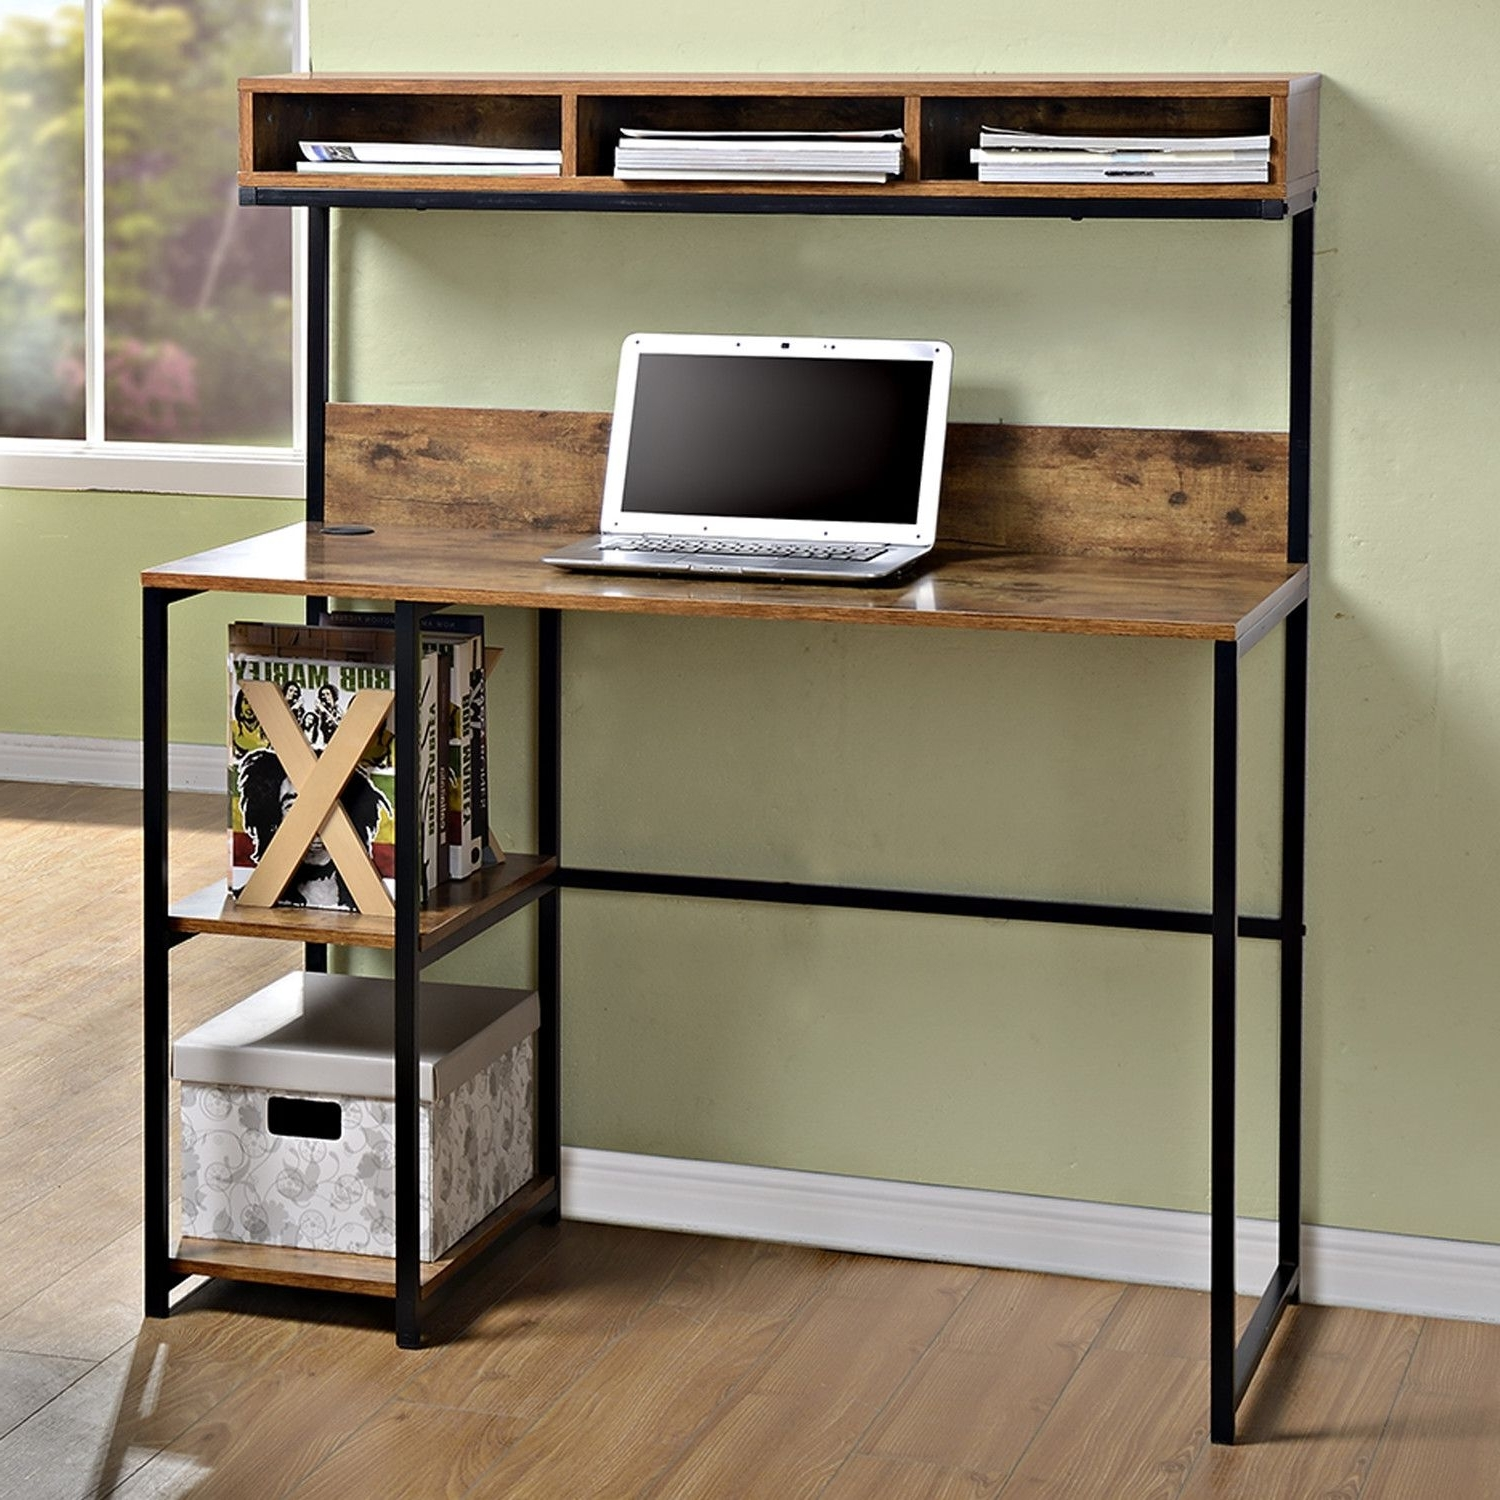 Computer Desks With Bookshelves Intended For 2019 23+ Diy Computer Desk Ideas That Make More Spirit Work (View 8 of 20)